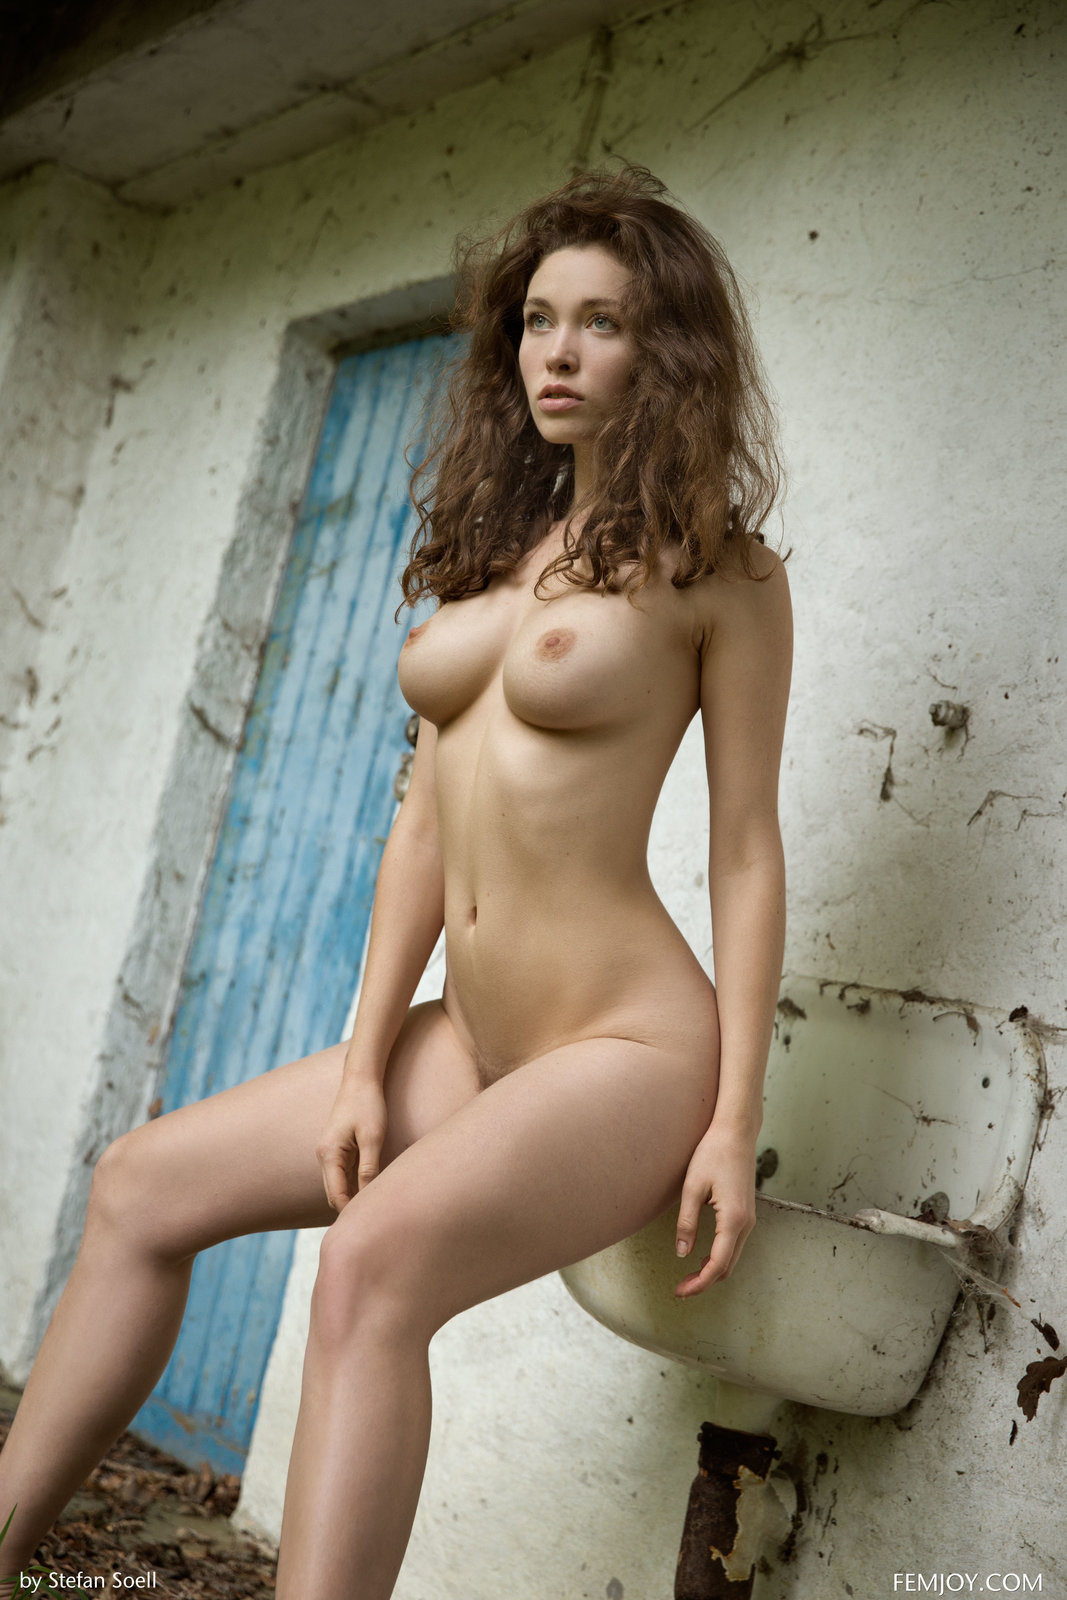 Vika A In Coming Back By Femjoy 16 Photos  Erotic Beauties-7644